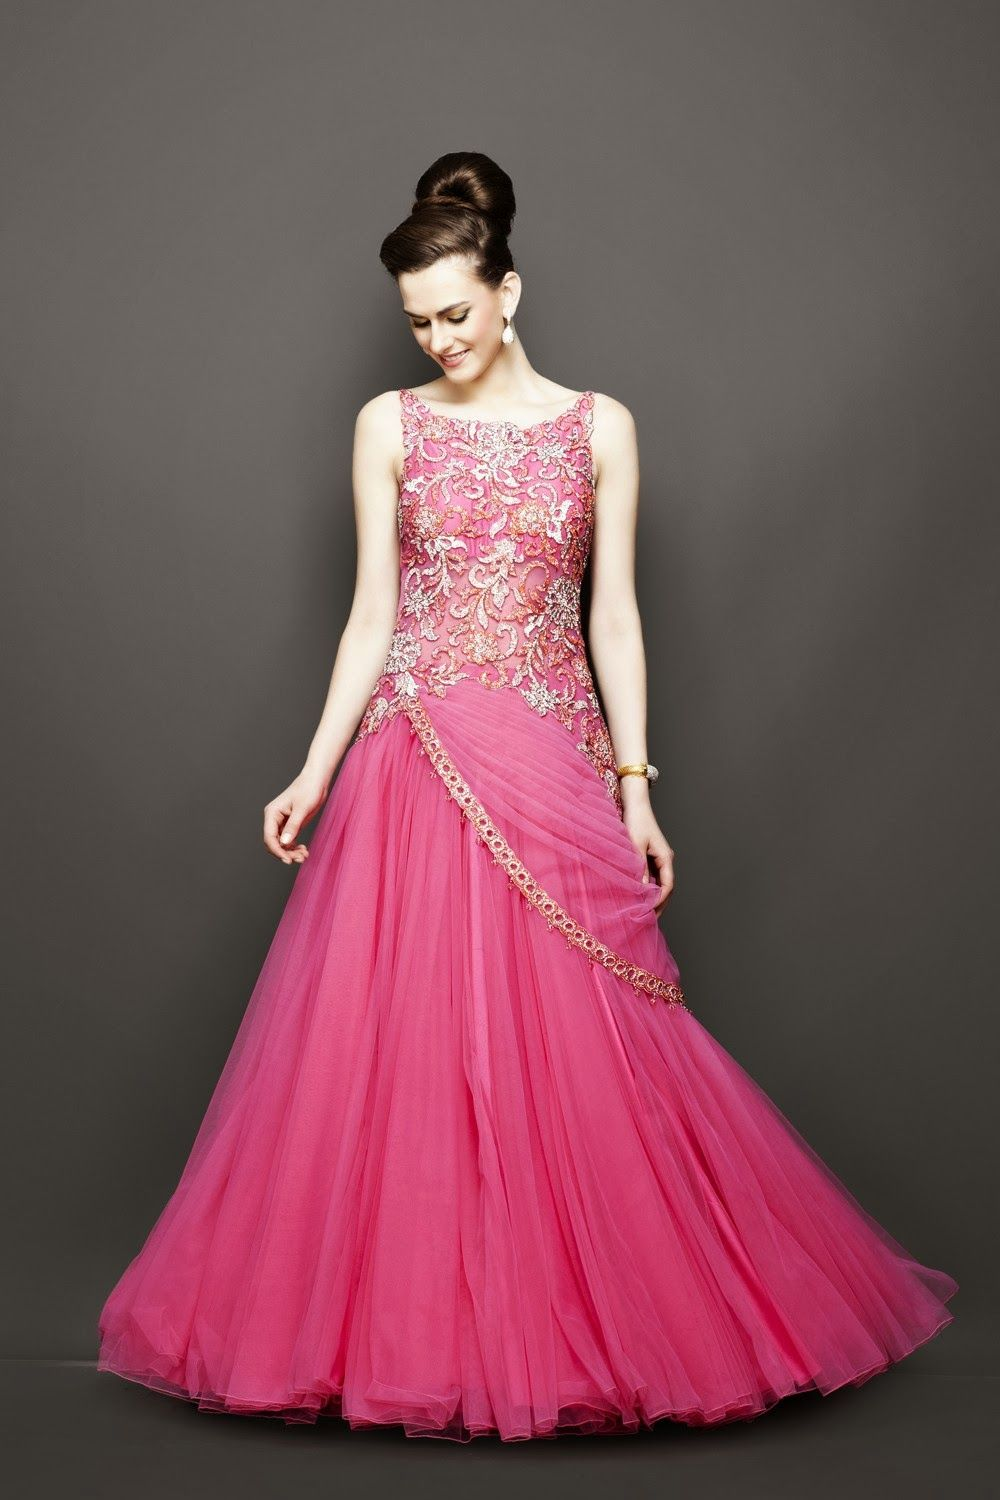 Evening dress for wedding in pink color dresses for Punjabi wedding dresses online